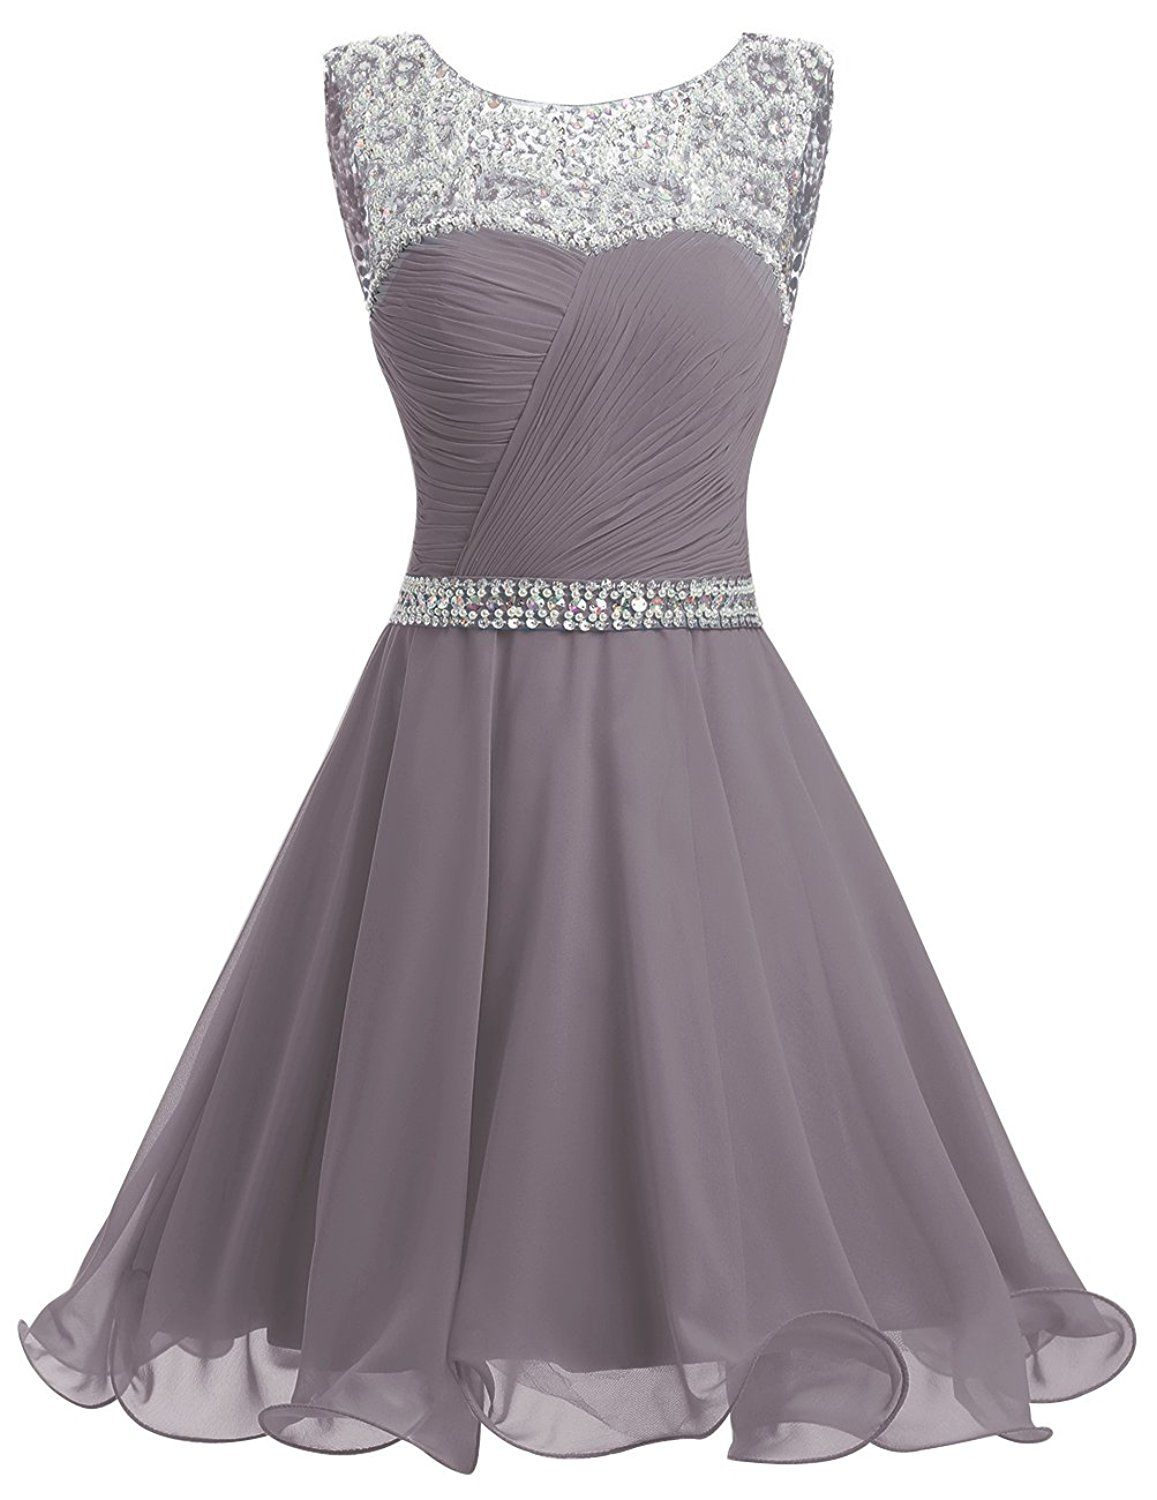 Dresstellsureg short chiffon open back prom dress with beading